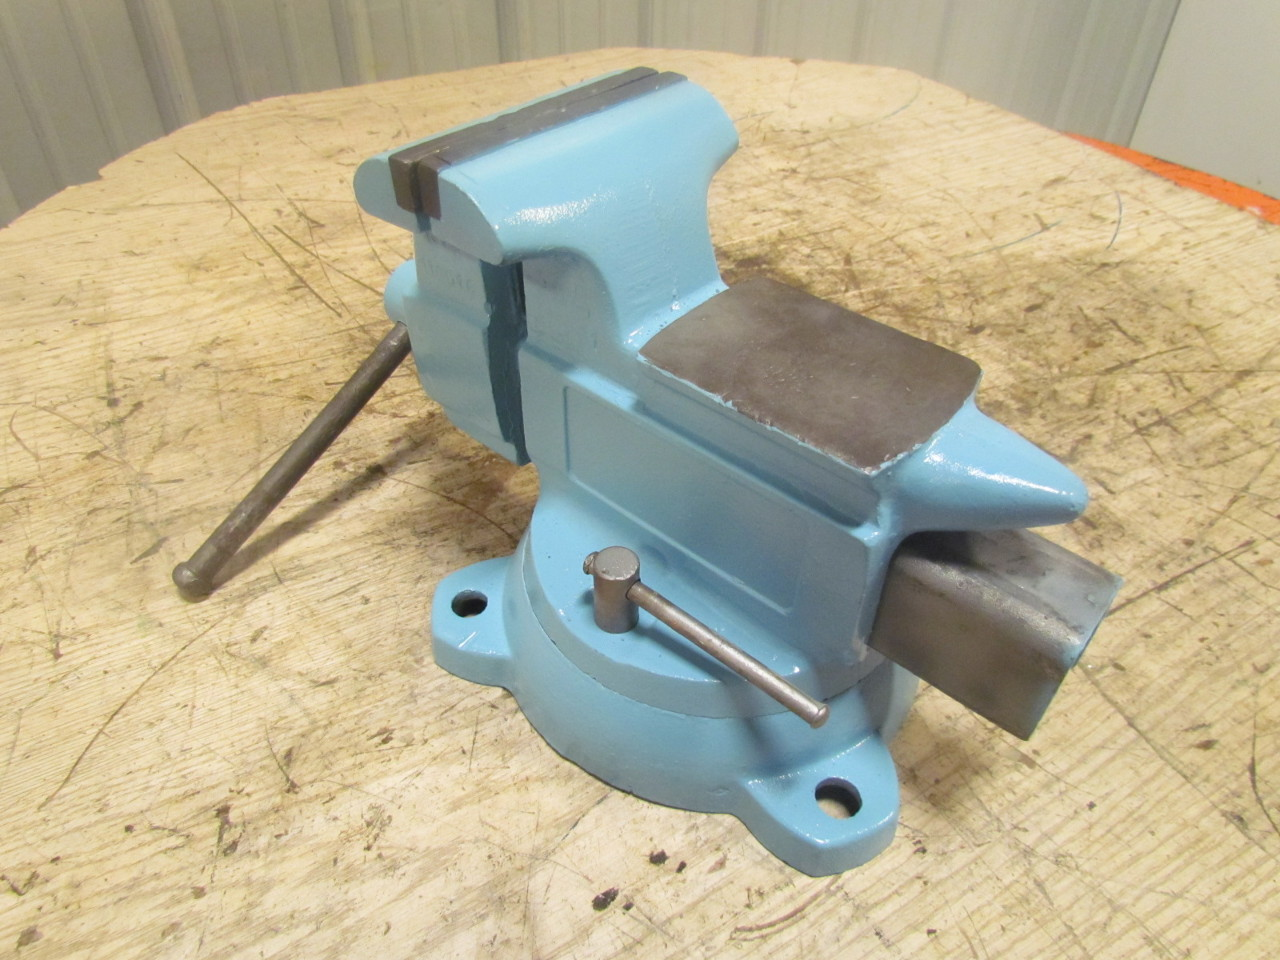 5 Quot Jaw Machnics Bench Vise Opens To 3 Quot Swivel Base